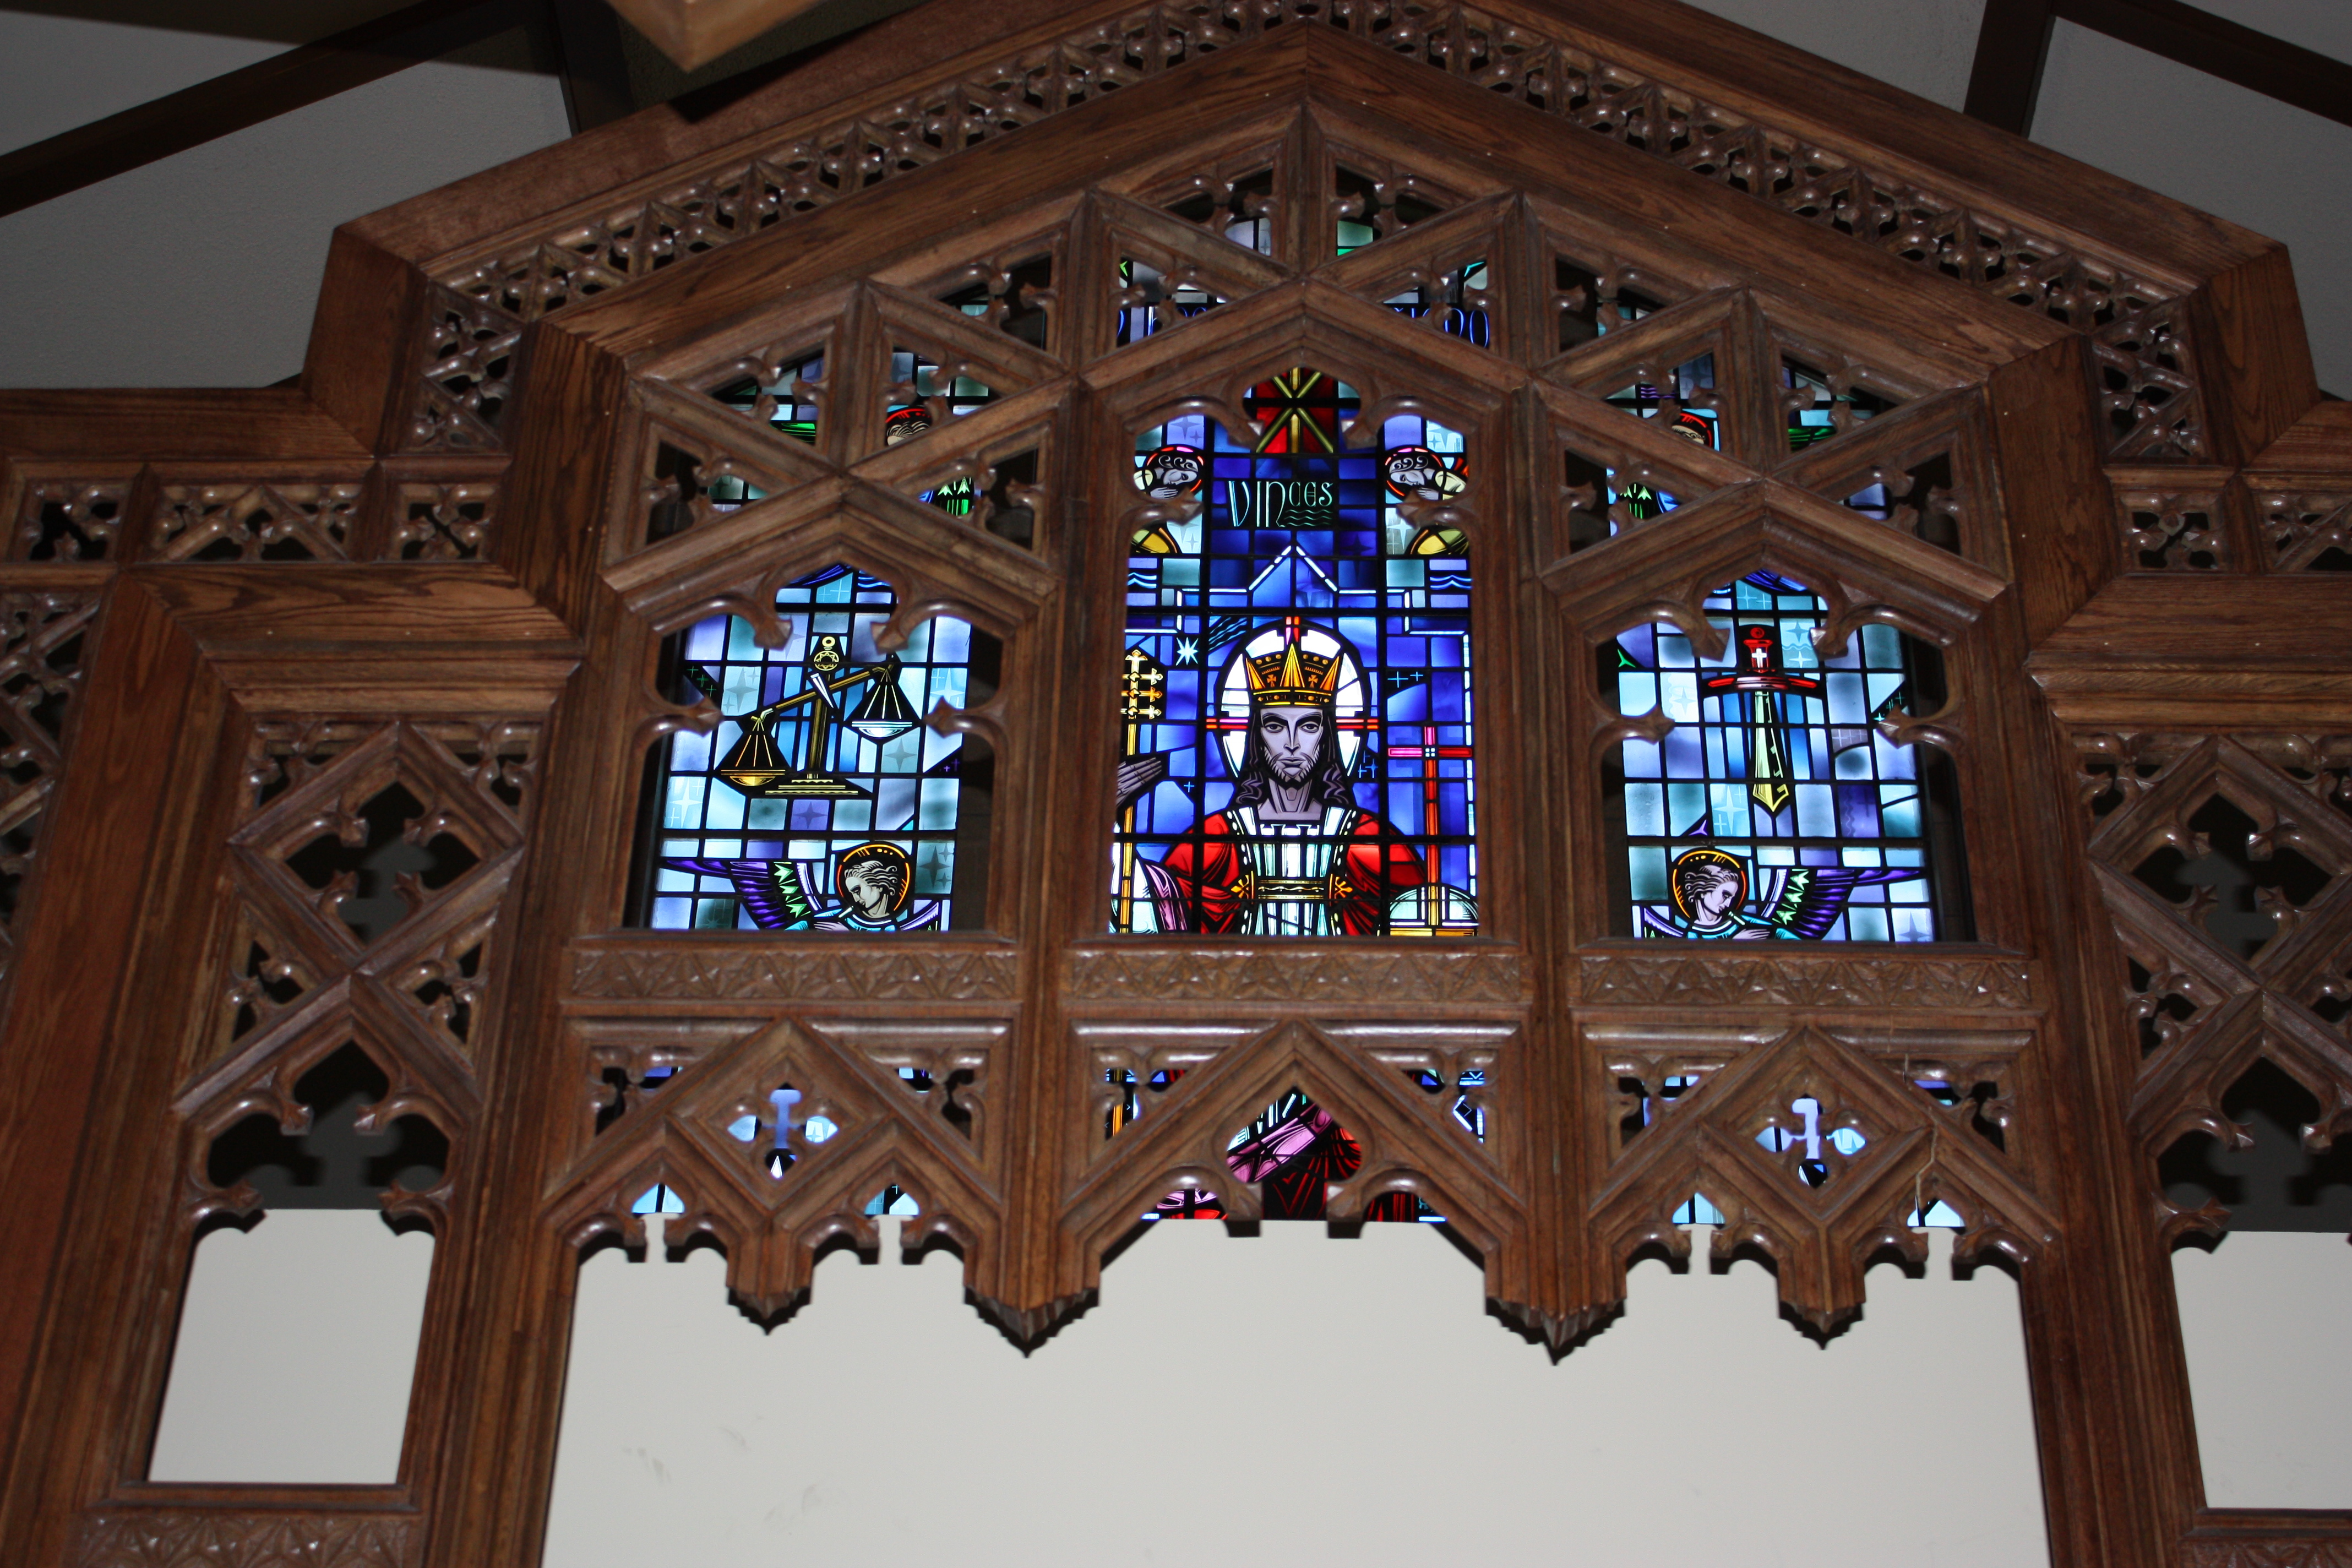 Large window with intricate wooden frames